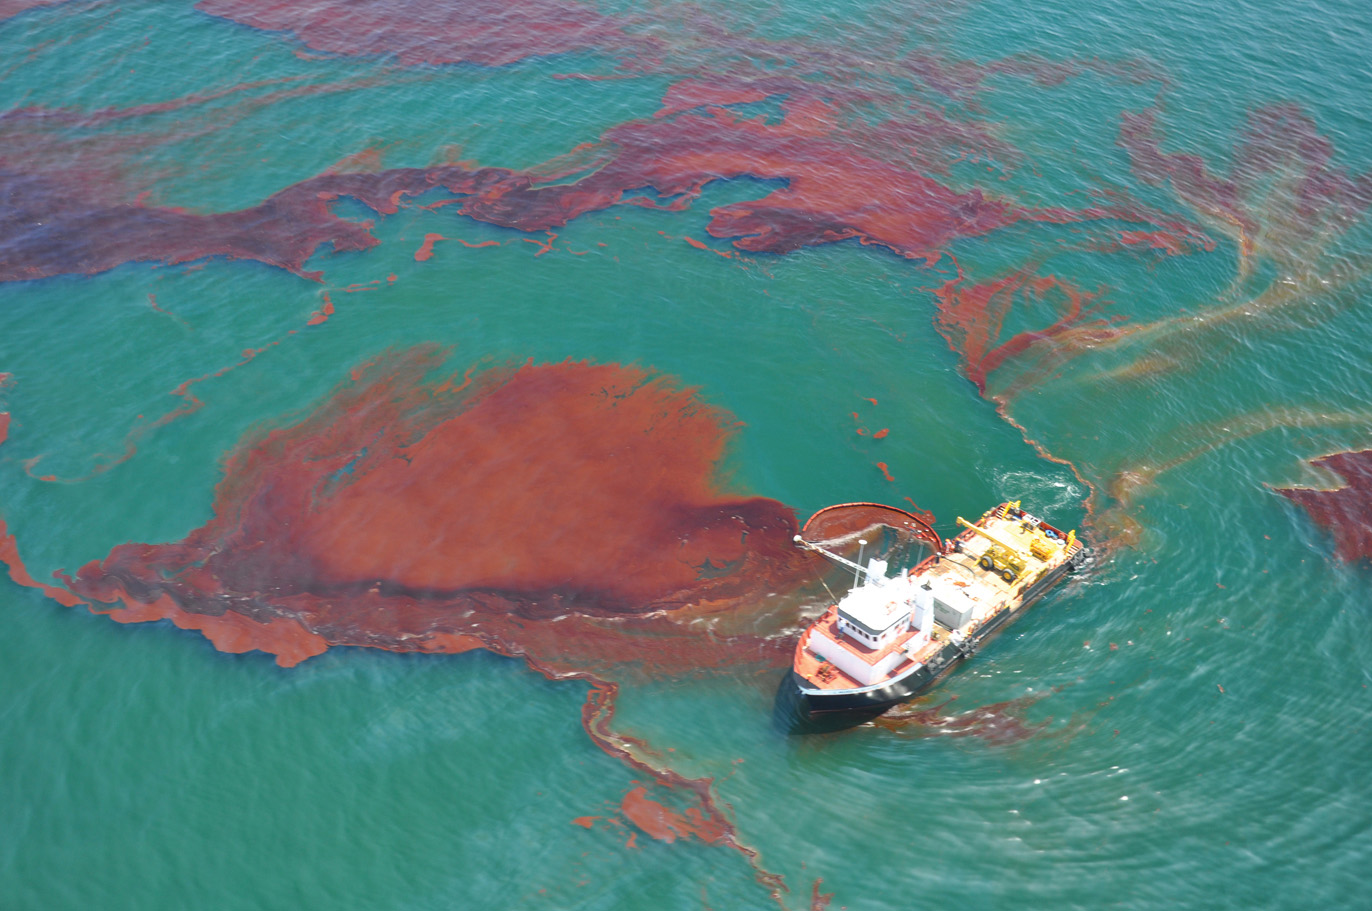 Skimming oil in the Gulf of Mexico during the Deepwater Horizon oil spill - Credit NOAA Office of Response and Restoration